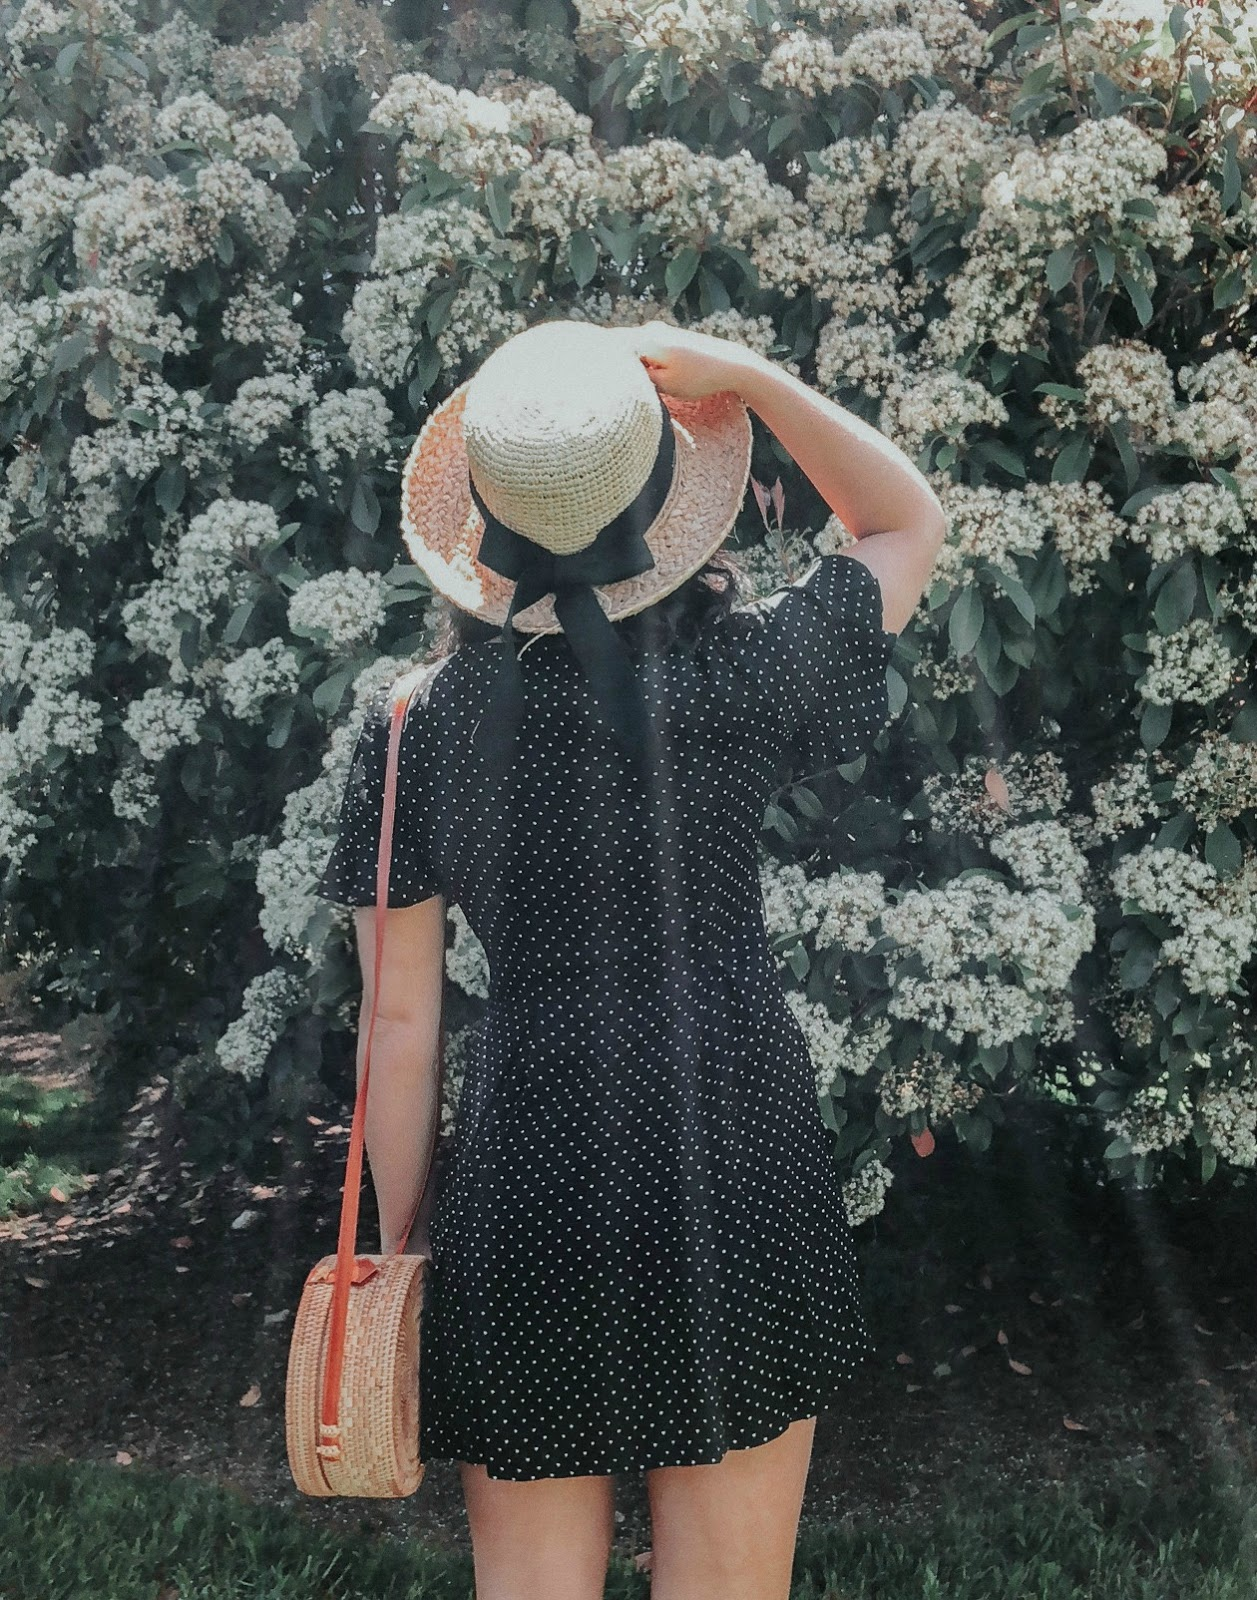 francesca's polka dot dress, french style, rattan bag, free people bag, xo samantha brooke, polka dot dress, ruffle sleeve dress, feminine fashion, life and messy hair, nc blogger, nc photographer